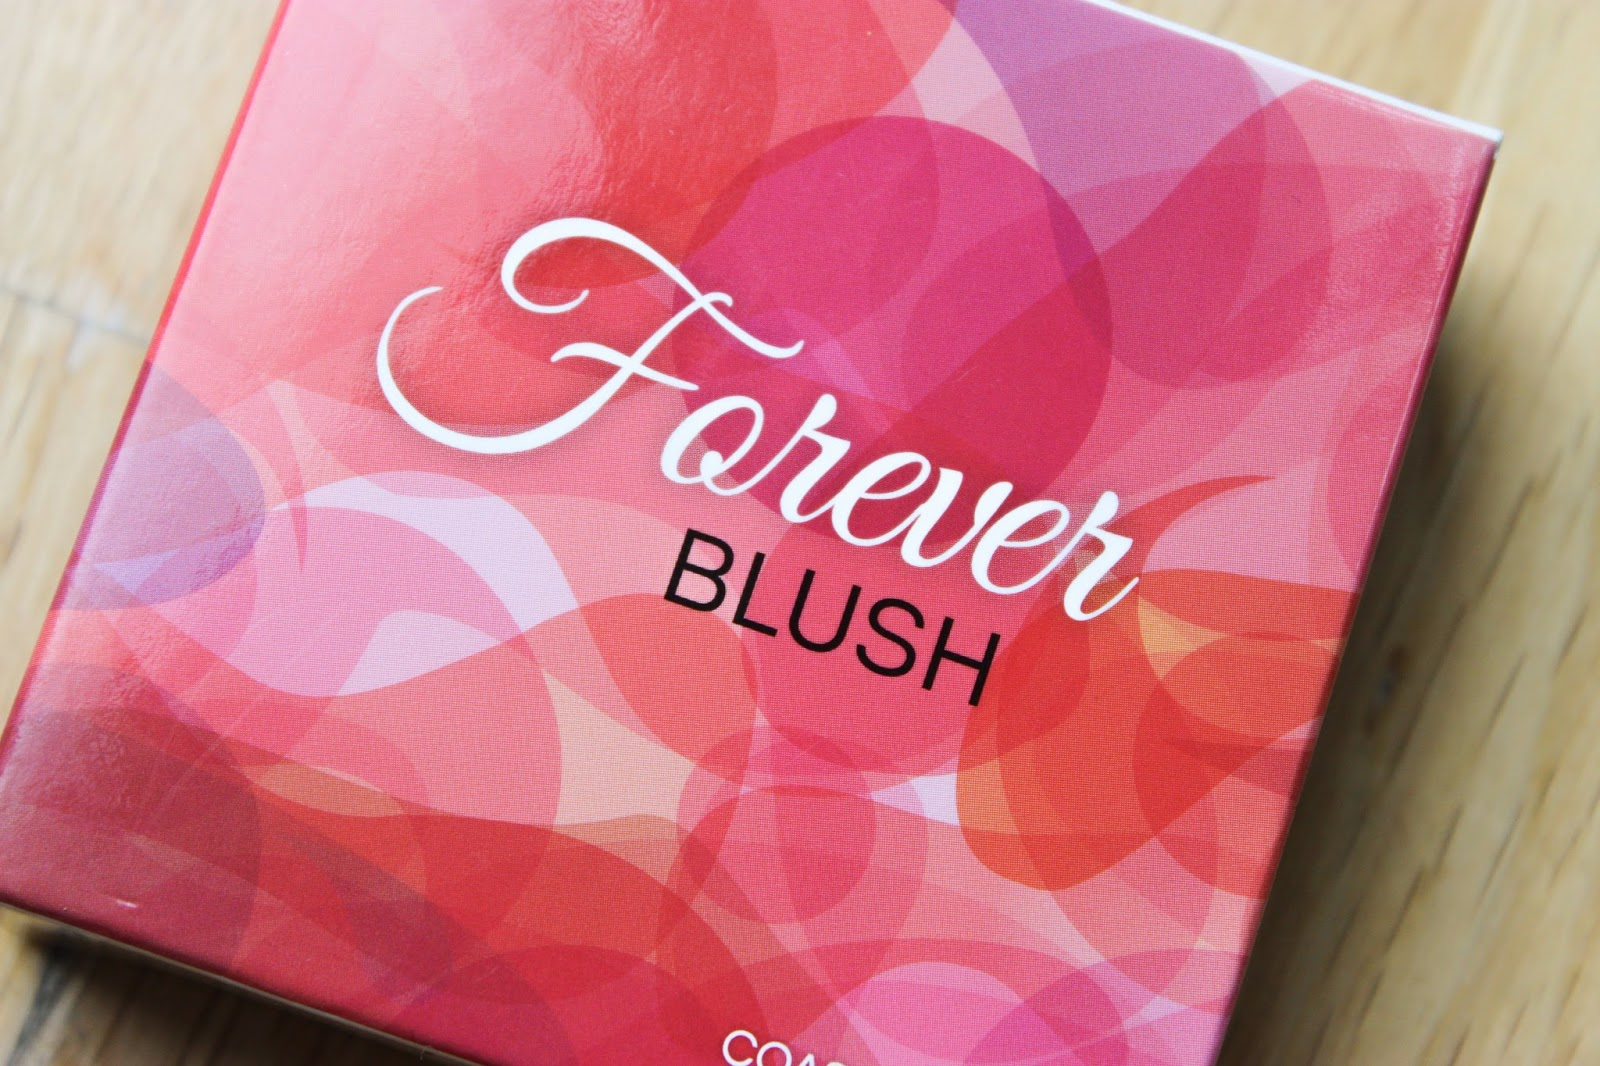 Coastal Scents Forever Blush in Radiant NC50 Discoveries Of Self Blog Beauty Blogger